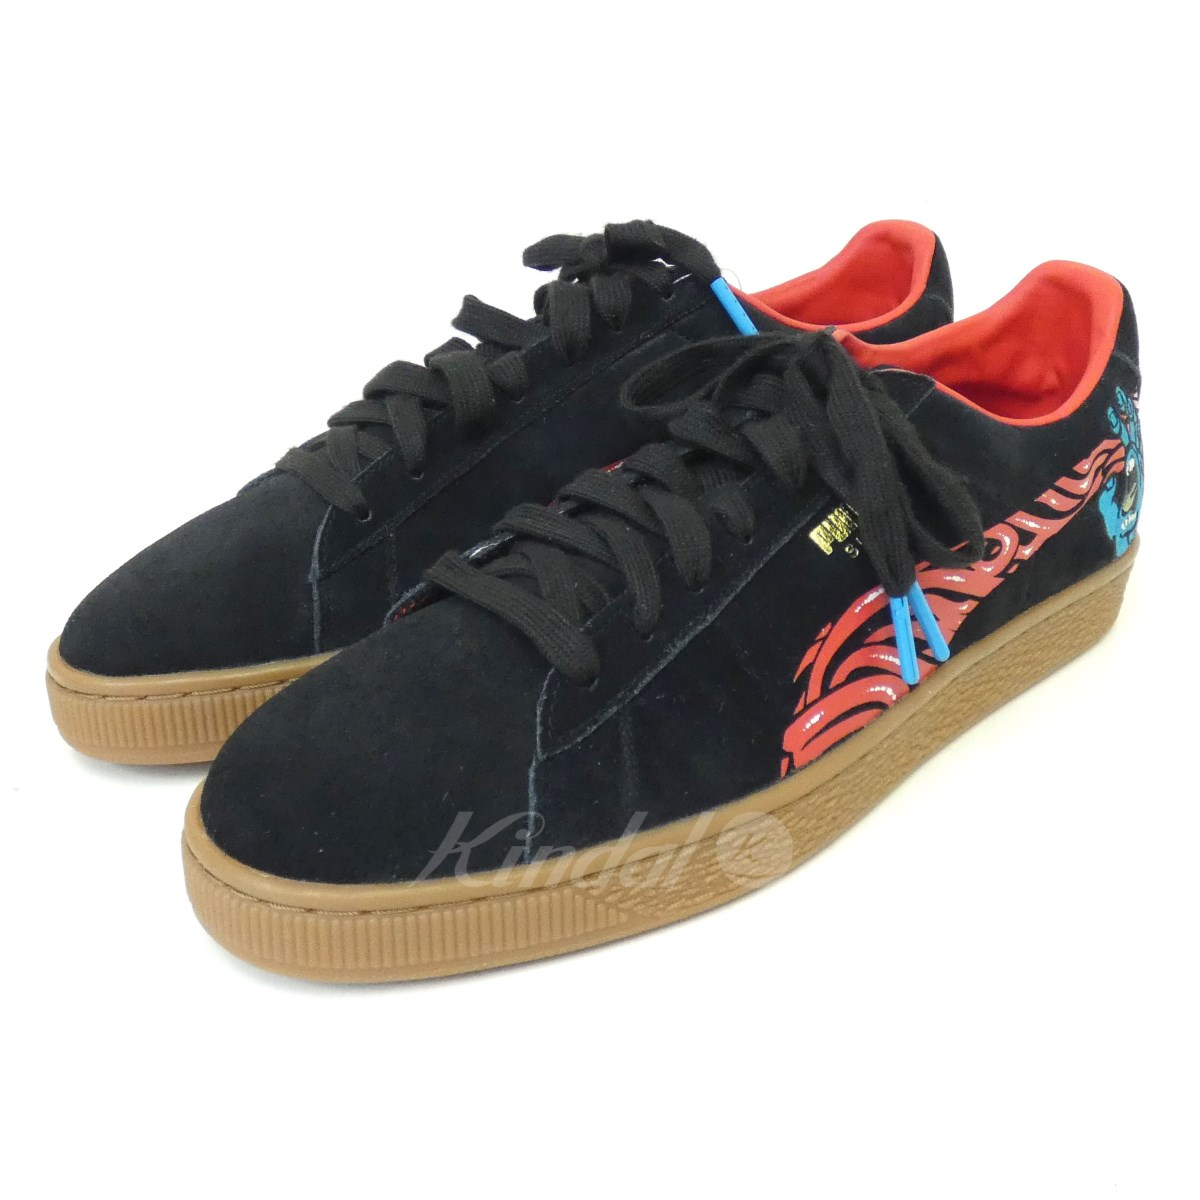 uk availability c71cc 7cf93 PUMA X Santa Cruz